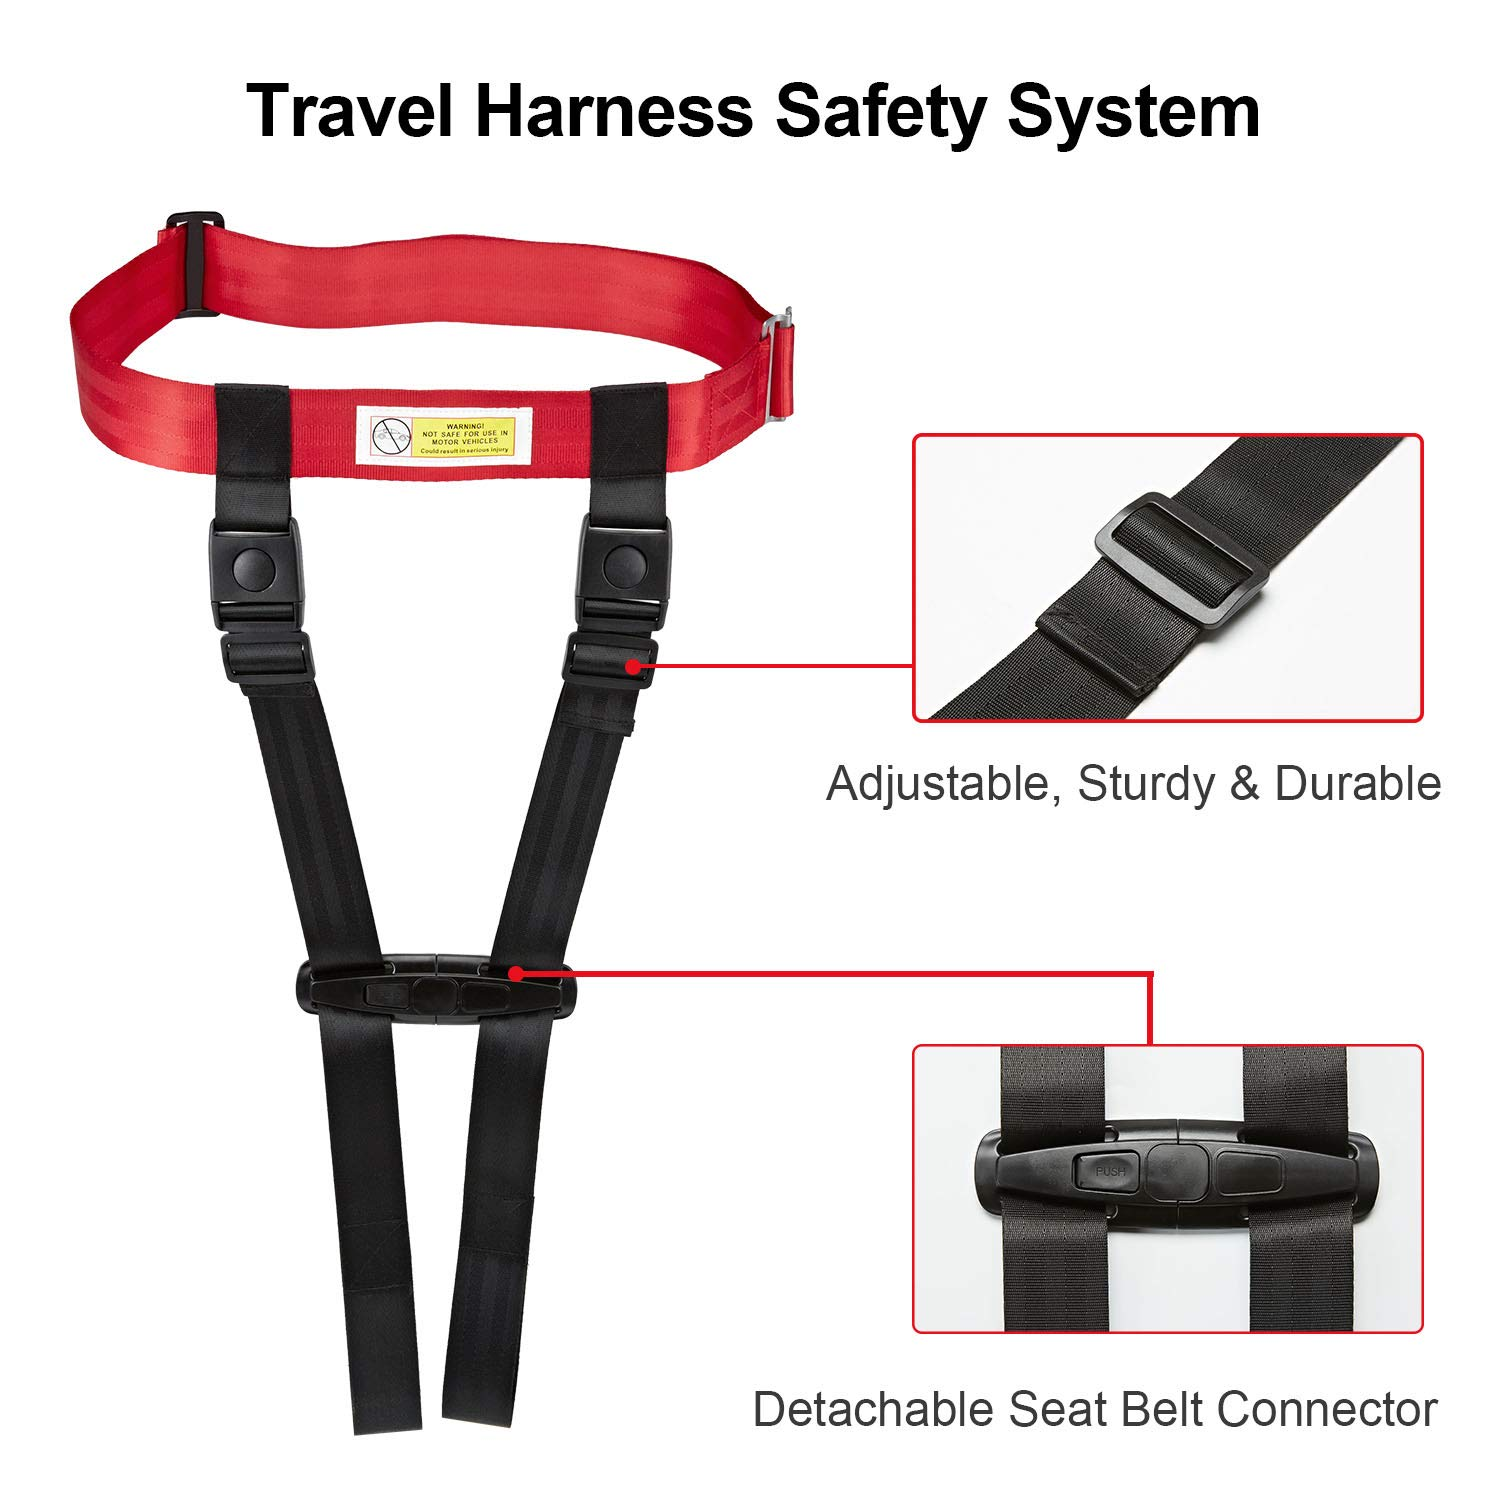 Child Safety Harness Airplane Travel Clip Strap, Travel Harness Safety System Approved by FAA, Airplane Safety Travel Harness for Baby, Toddlers & Kids by Farochy (Image #4)